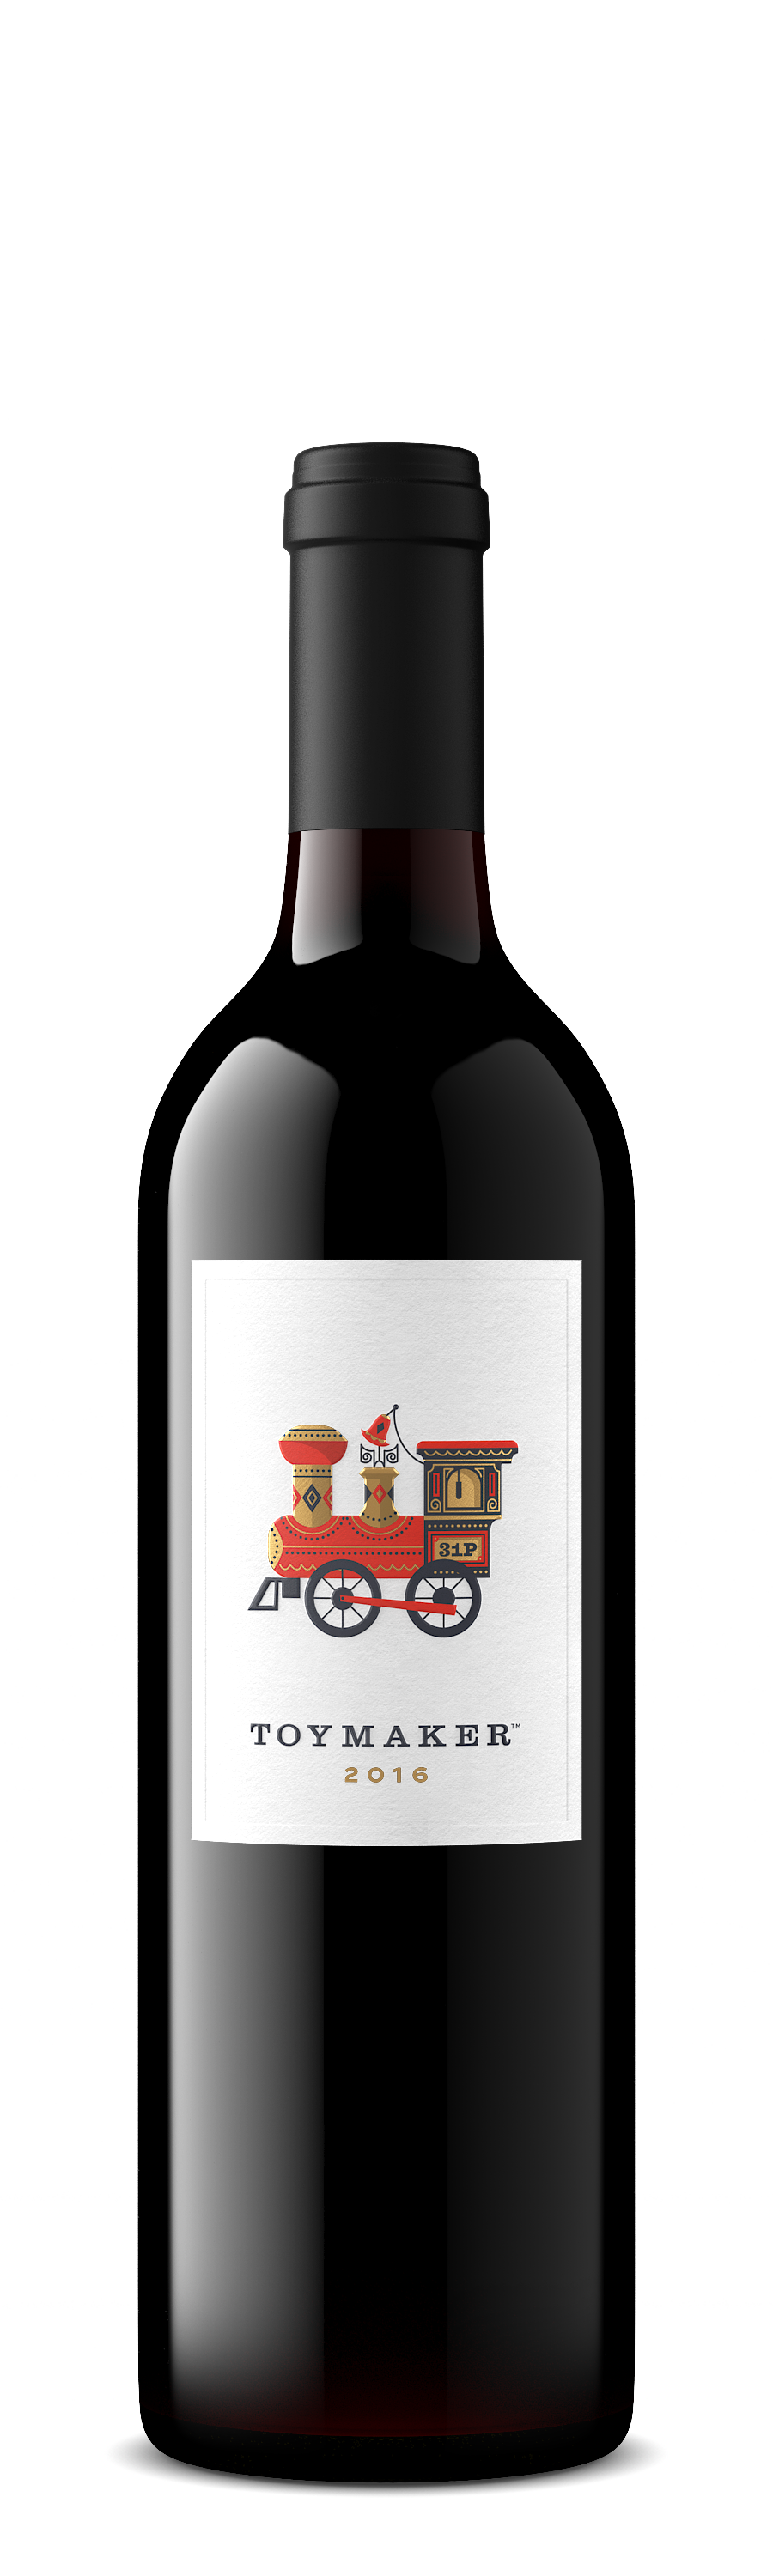 2016 ToyMaker Cellars Cabernet Sauvignon, Red Wine, Napa Valley, California, made by winemaker Martha McClellan of Sloan Estate, Checkerboard Vineyards, Levy & McClellan, and formerly of Harlan Estate. Best Napa Valley Grand Cru red wines.